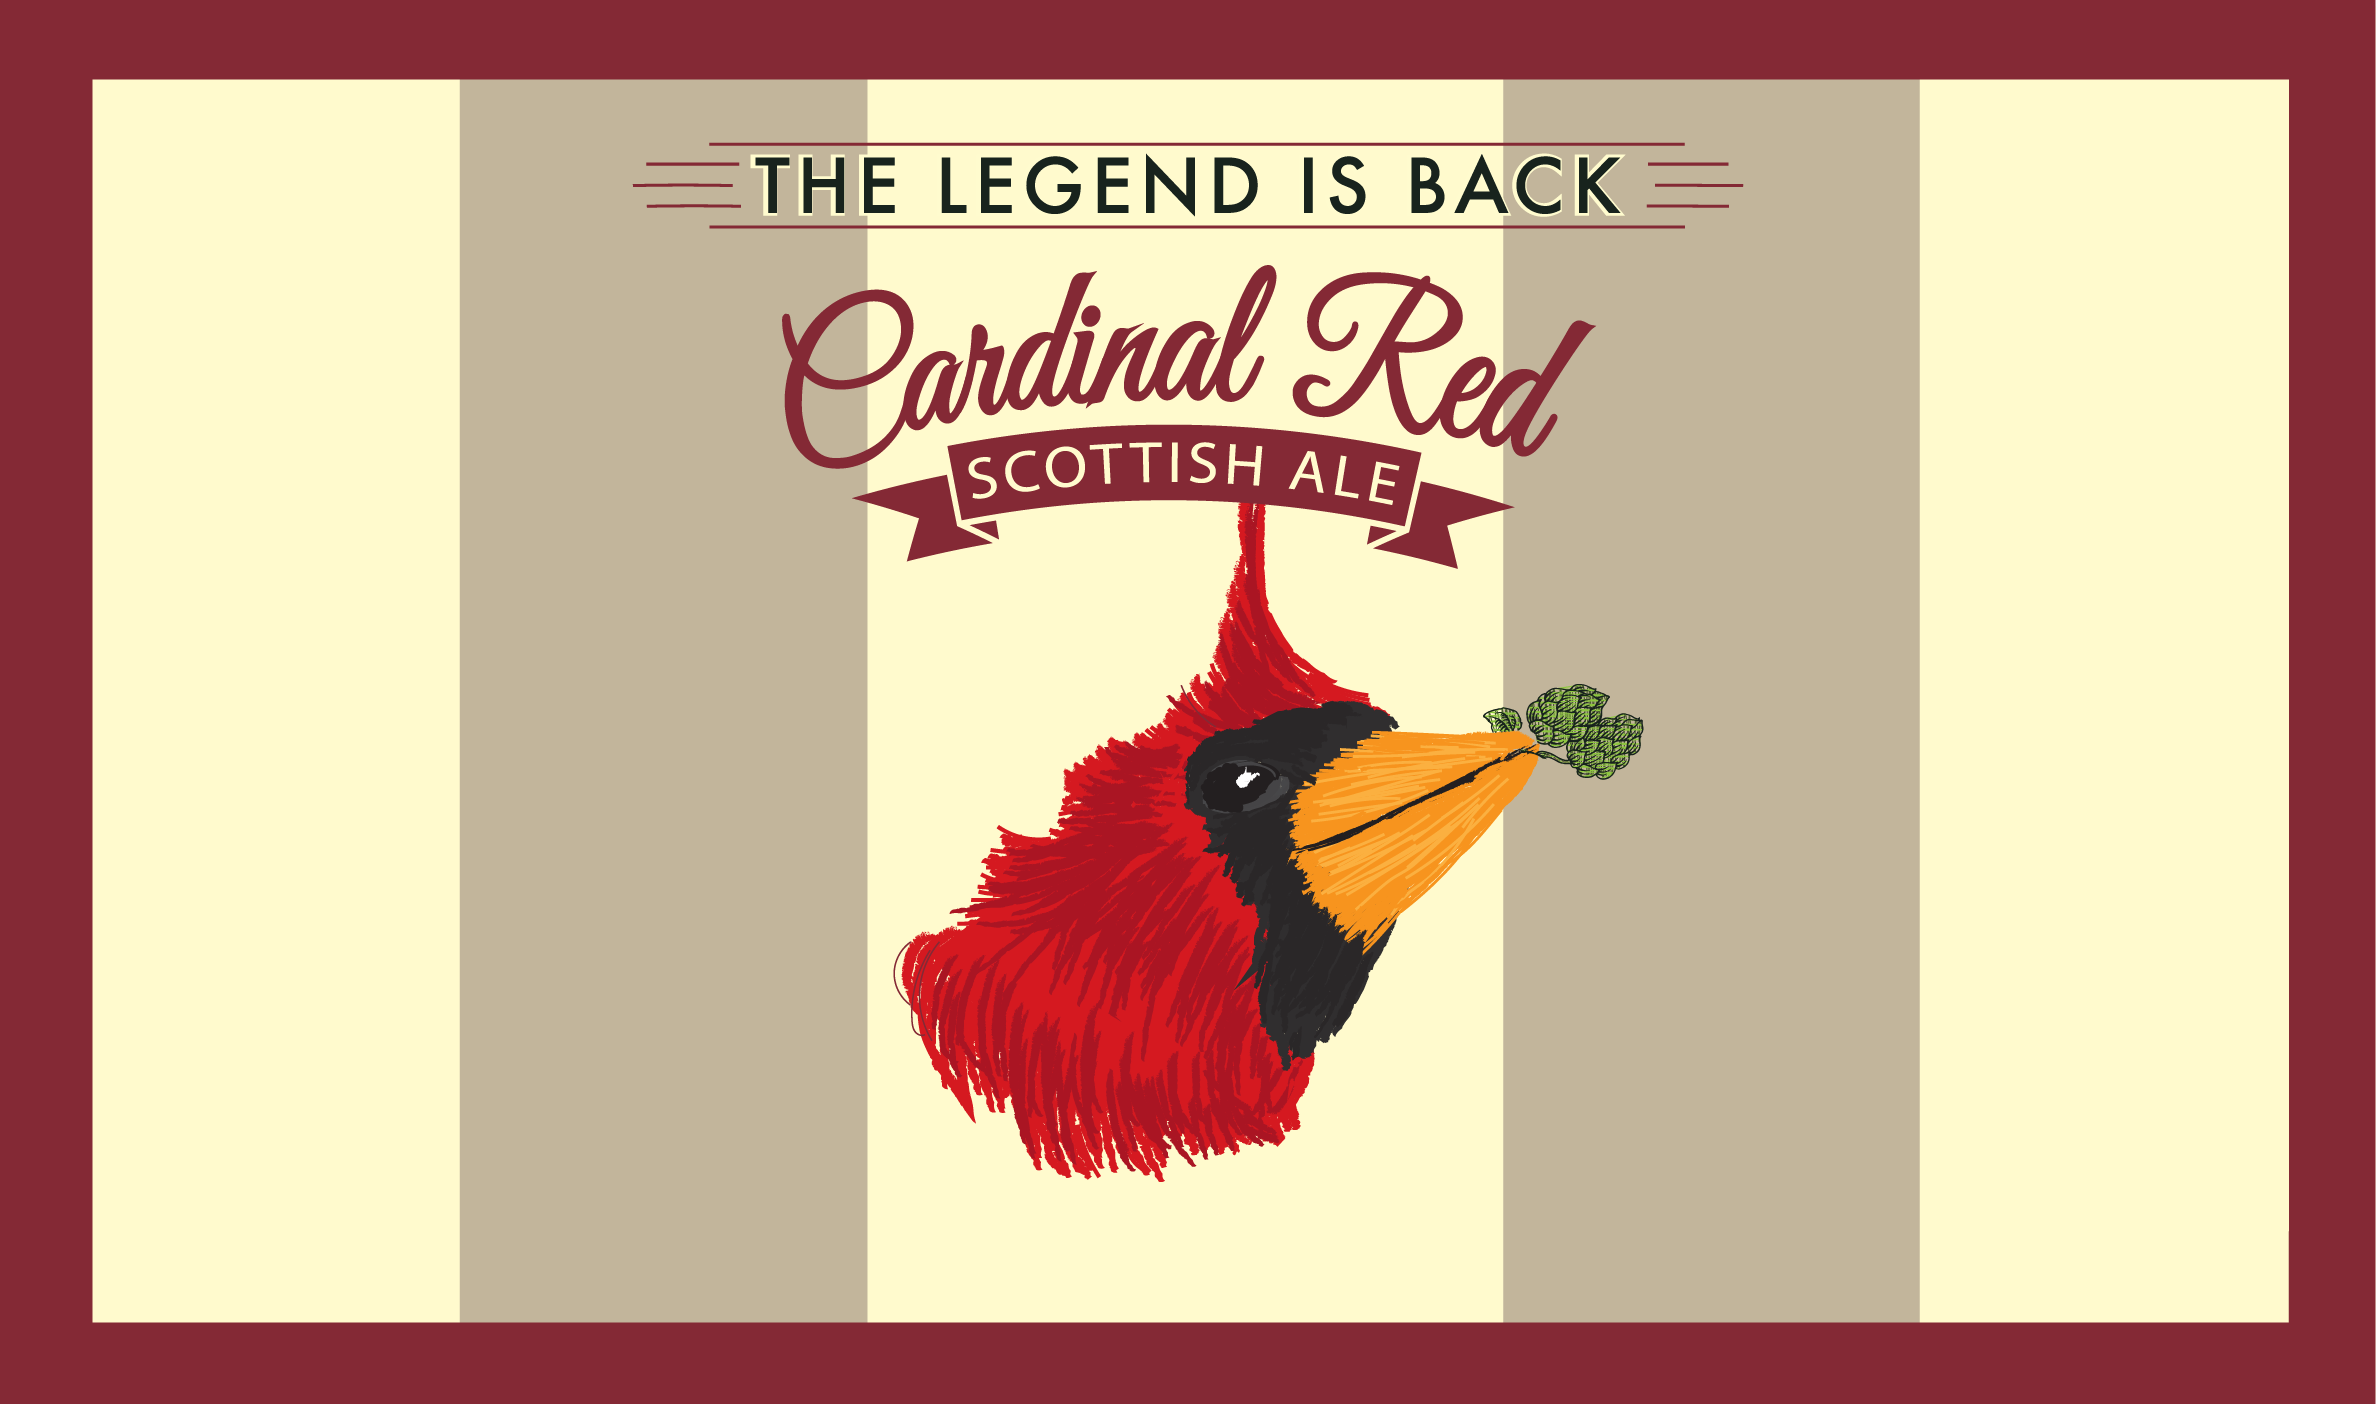 Cardinal Red Scottish Ale